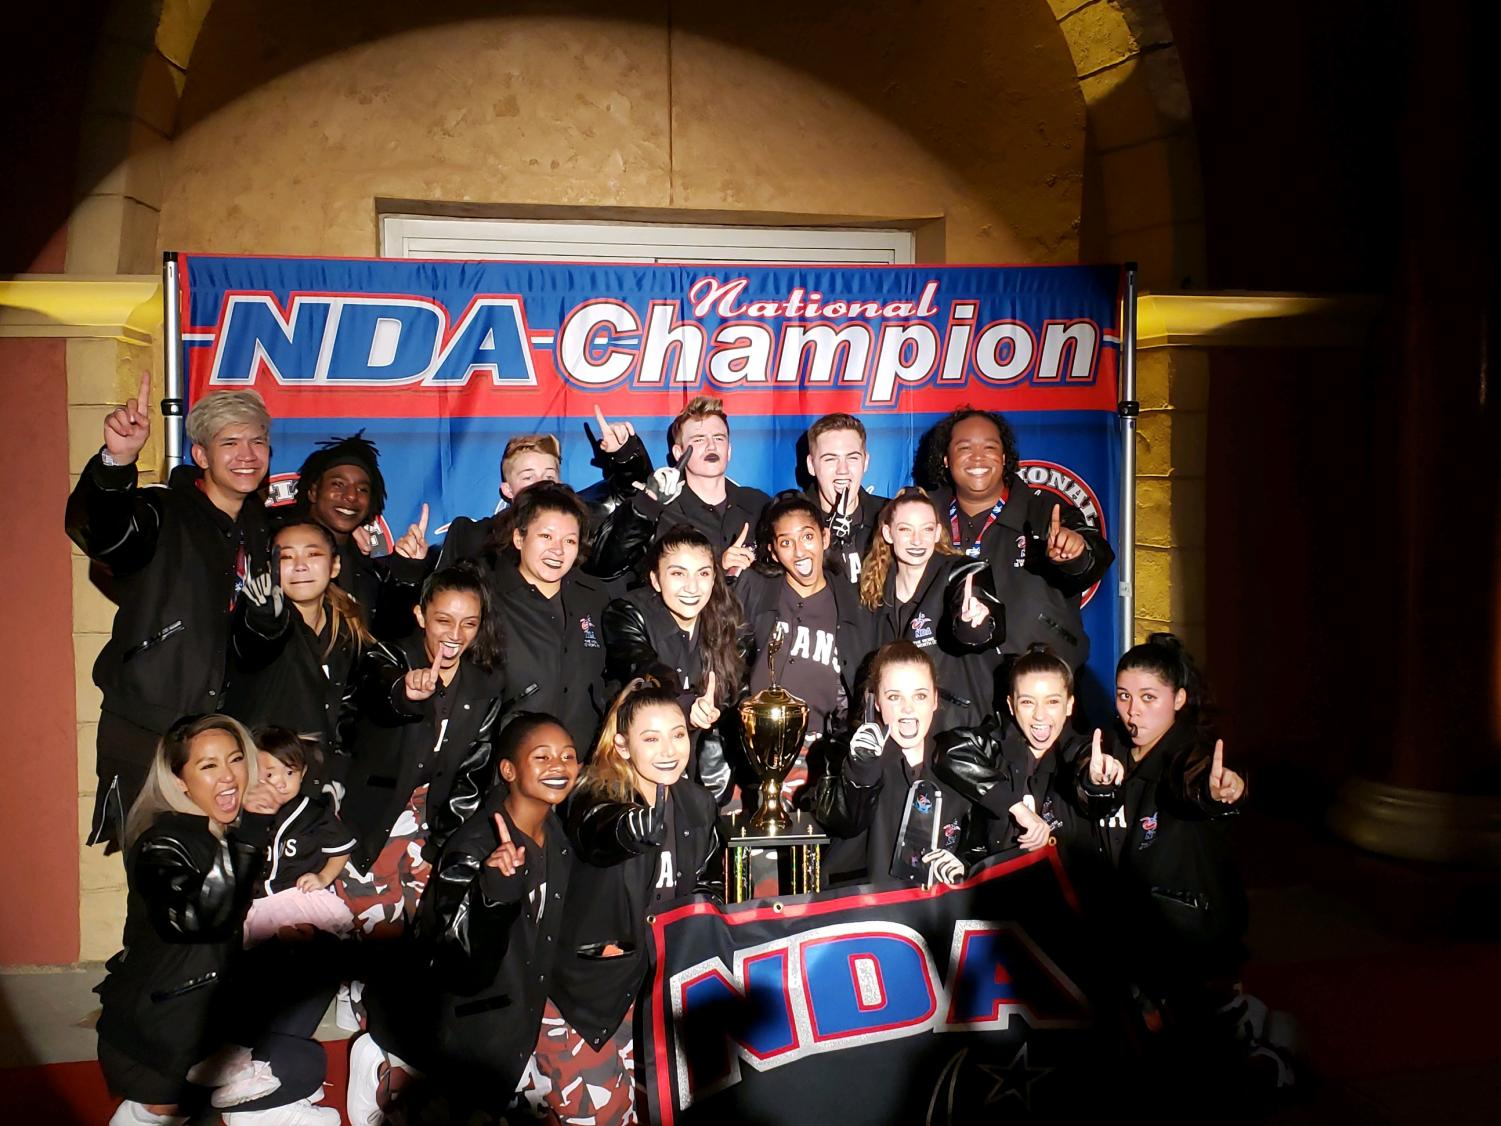 DHSDT celebrates their first national championship after years of coming so close.